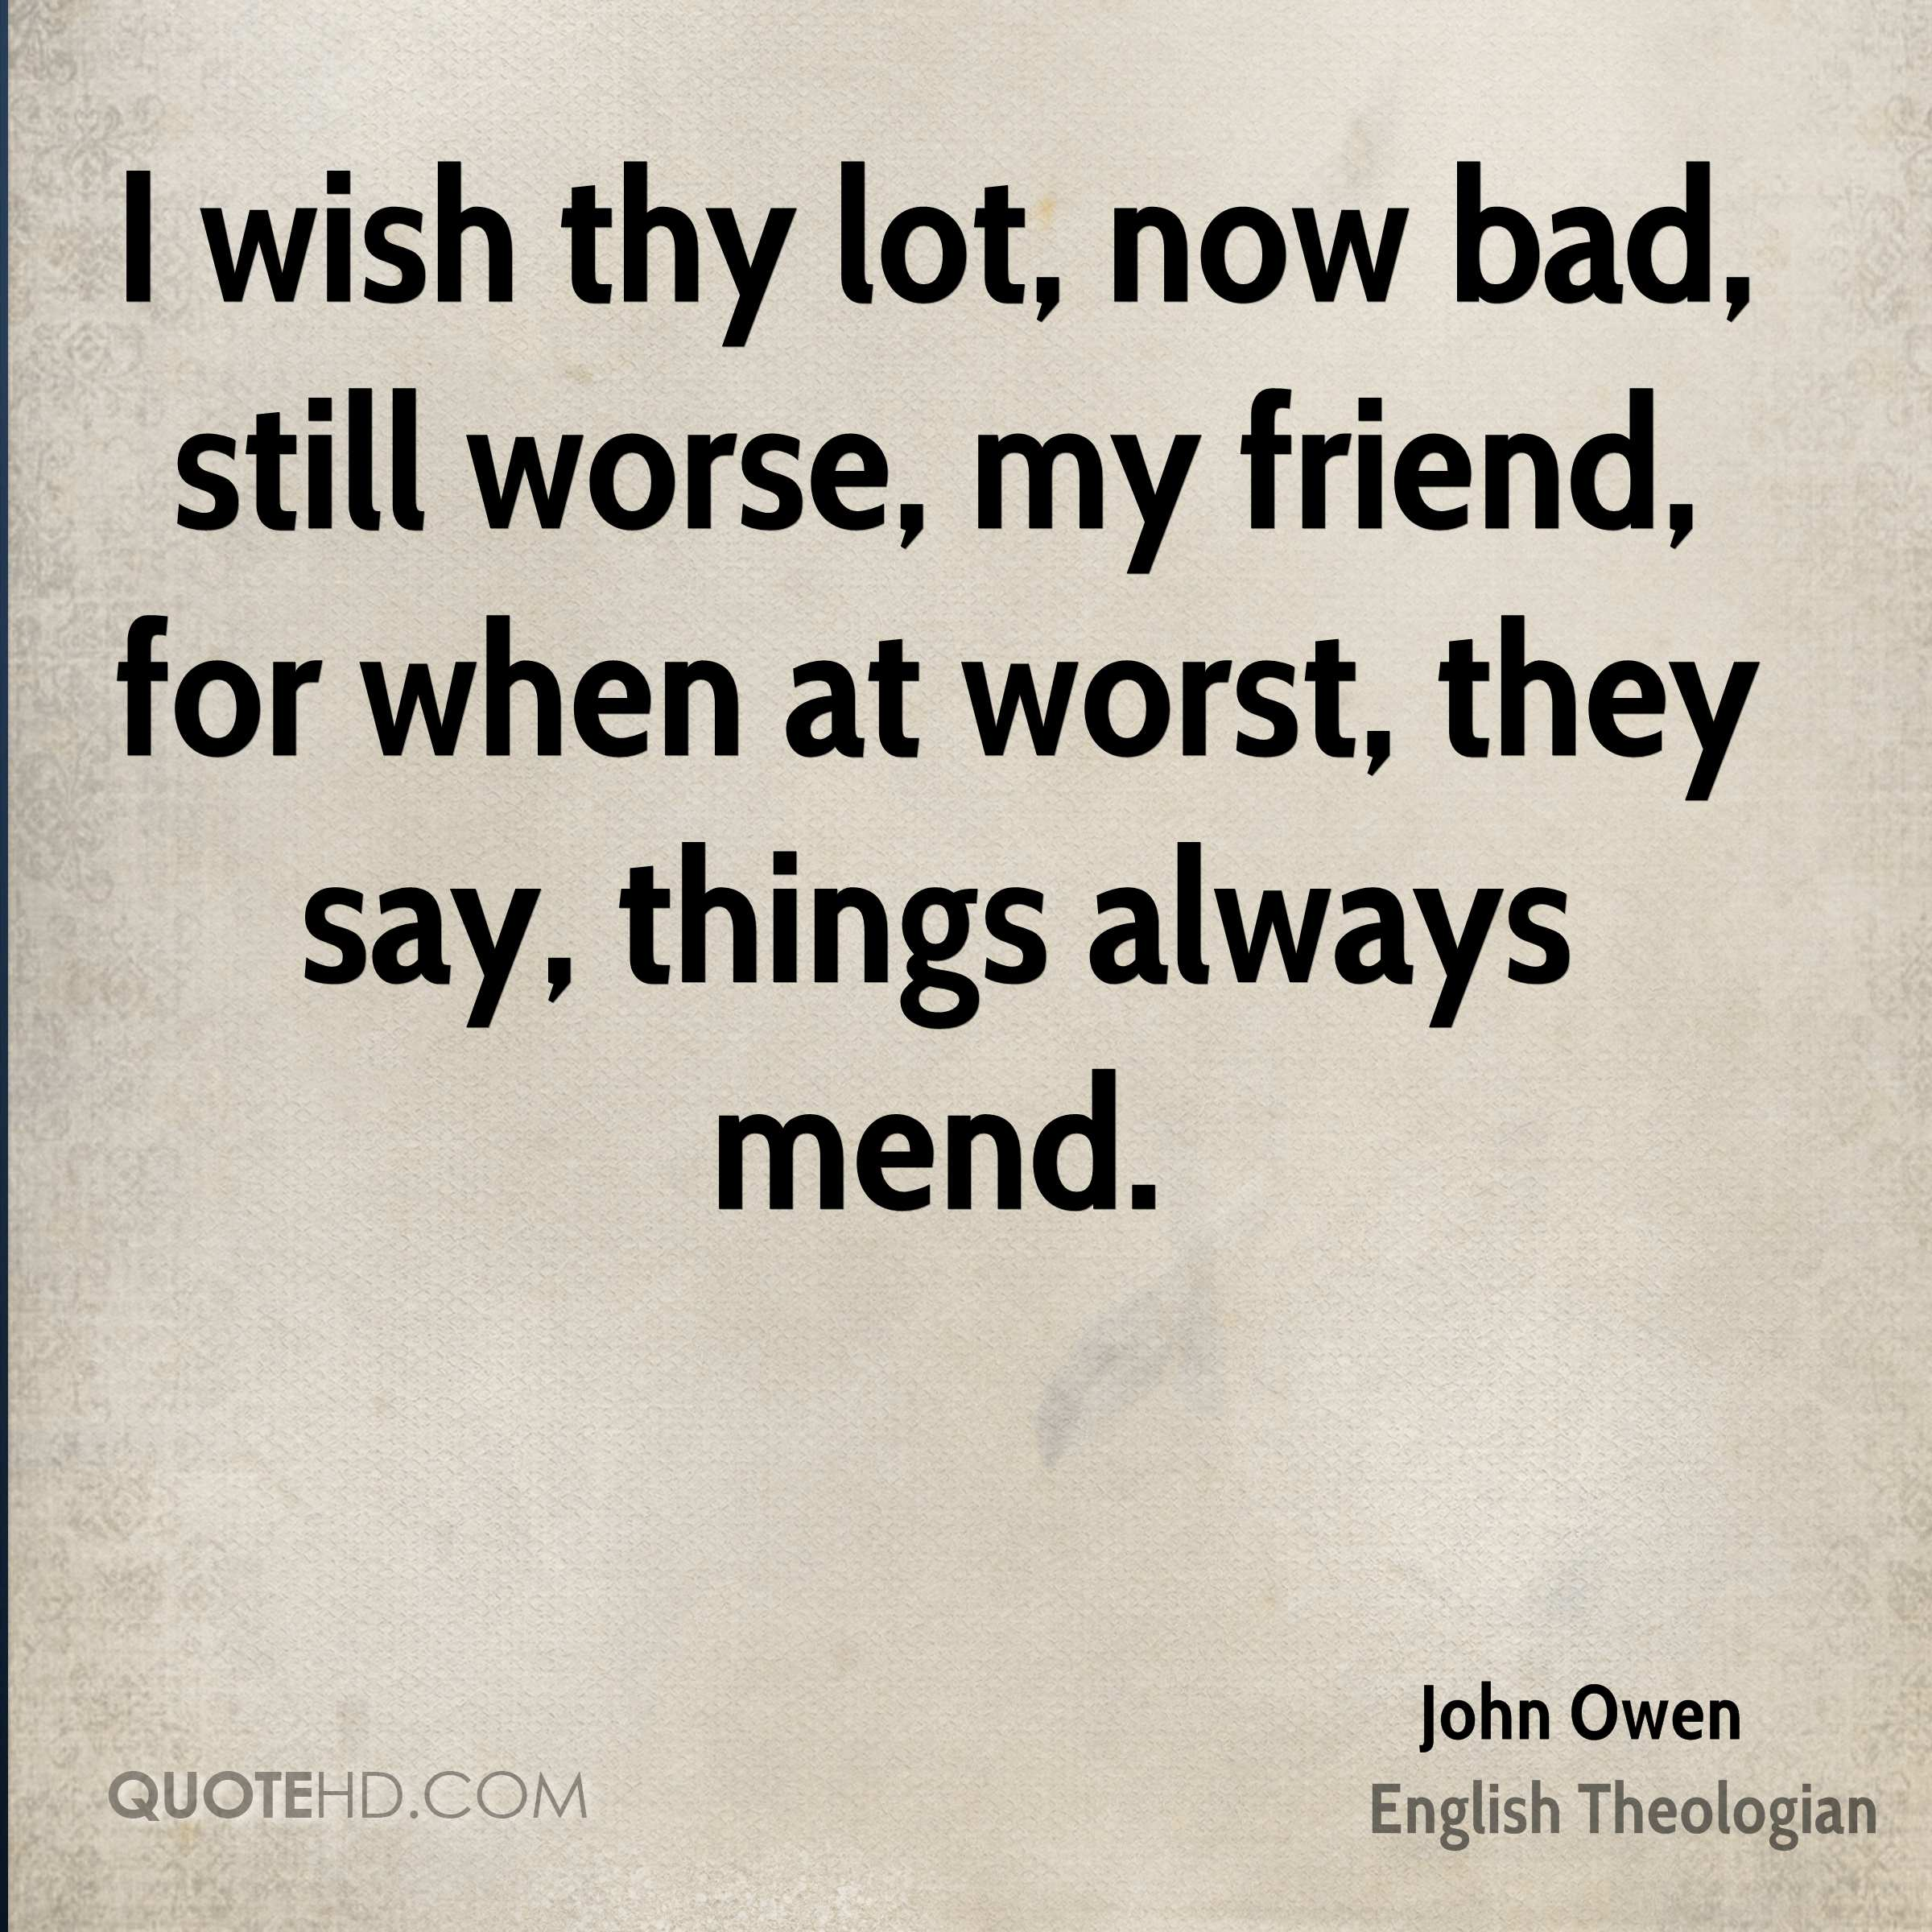 I wish thy lot, now bad, still worse, my friend, for when at worst, they say, things always mend.